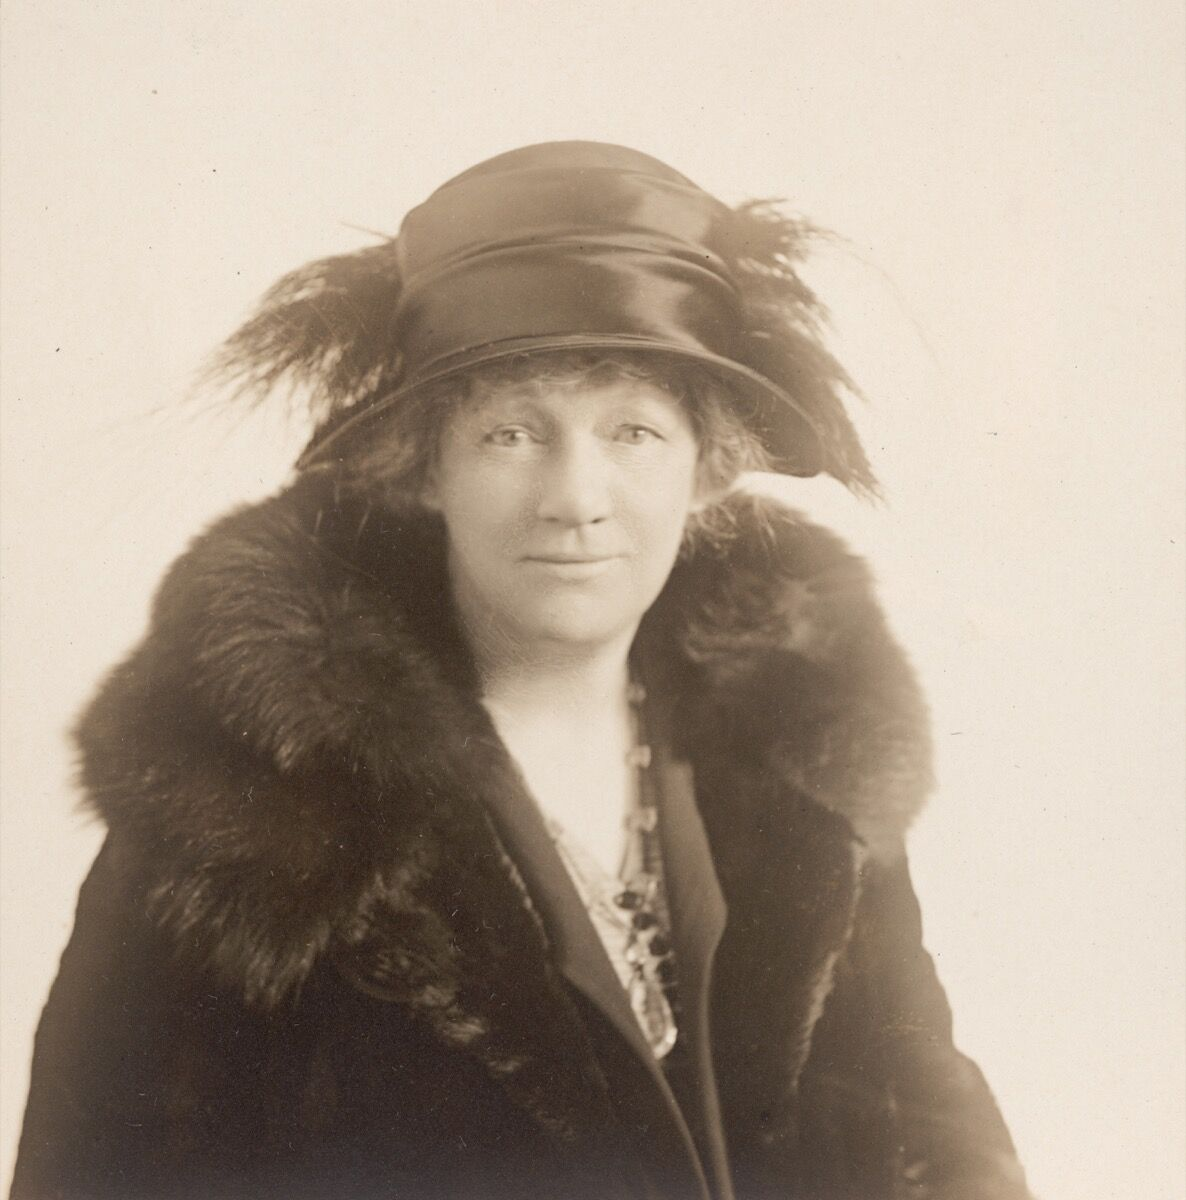 Lillie P. Bliss. c. 1924. Rona Roob Papers, II.C.3. Courtesy of The Museum of Modern ArtArchives, New York.